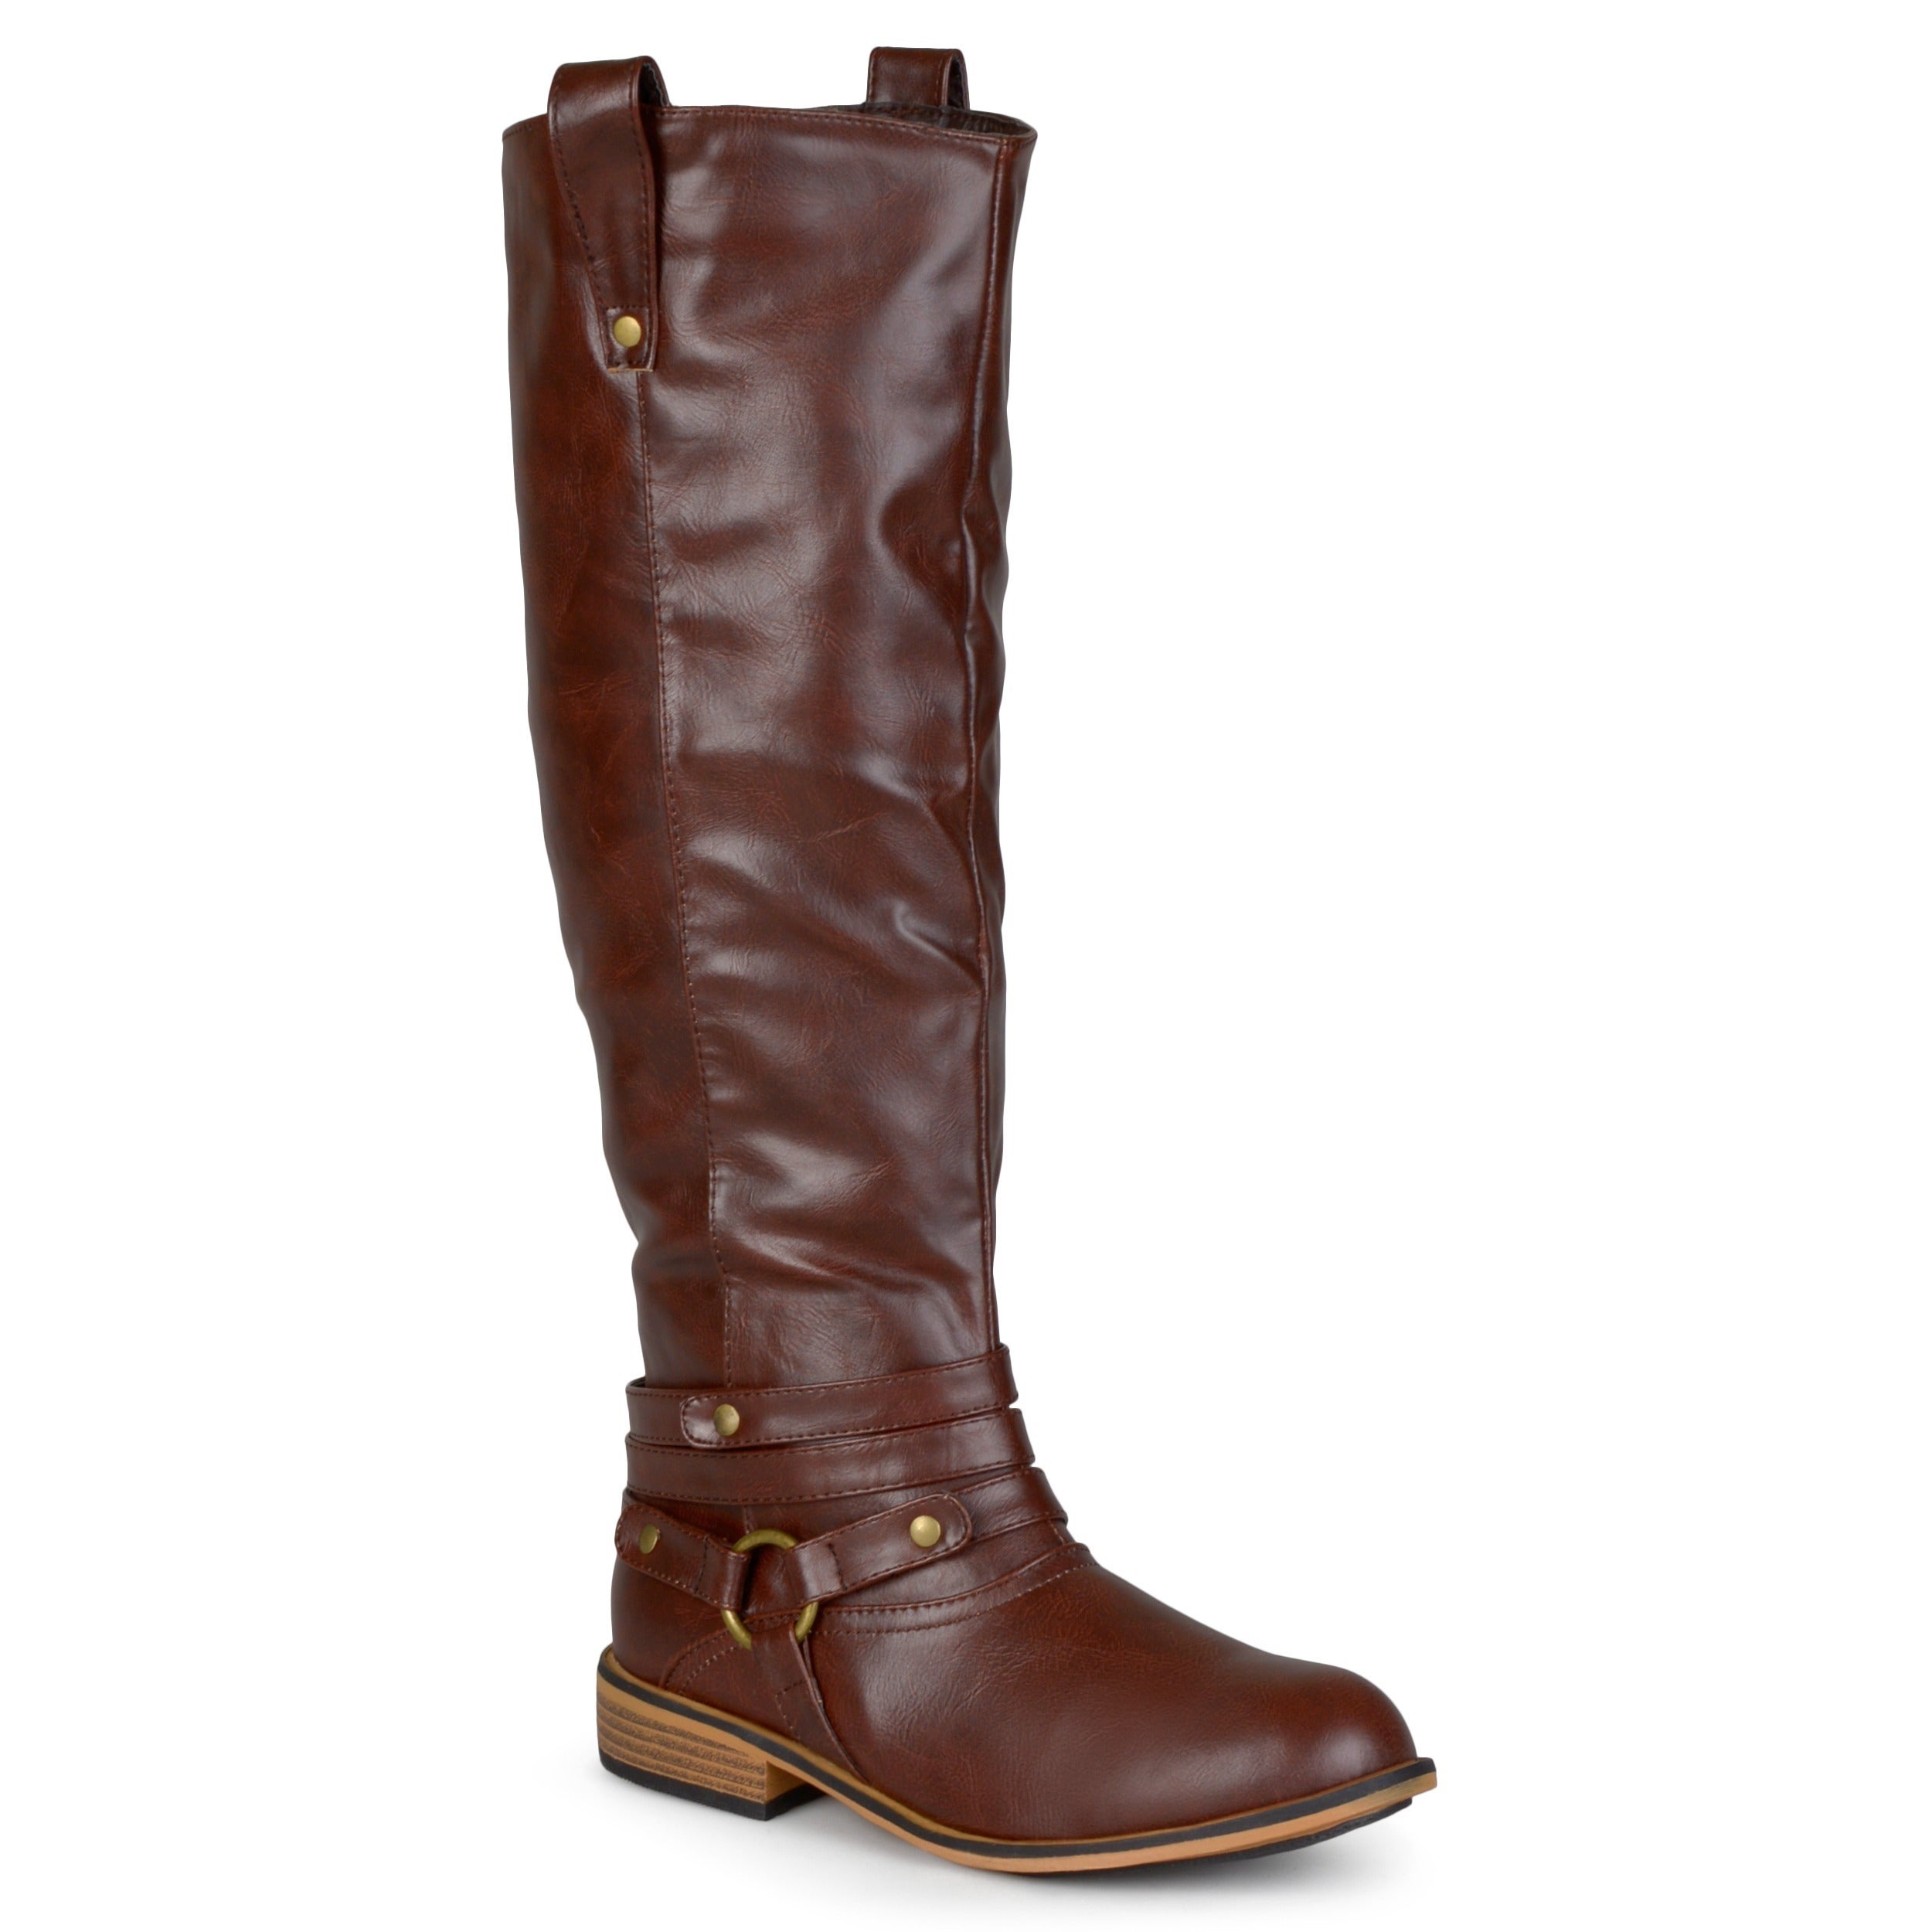 8c30f35c4a49 Shop Journee Collection Women's 'Walla' Regular and Wide-calf Ankle-strap  Knee-high Riding Boot - Free Shipping Today - Overstock - 8342899